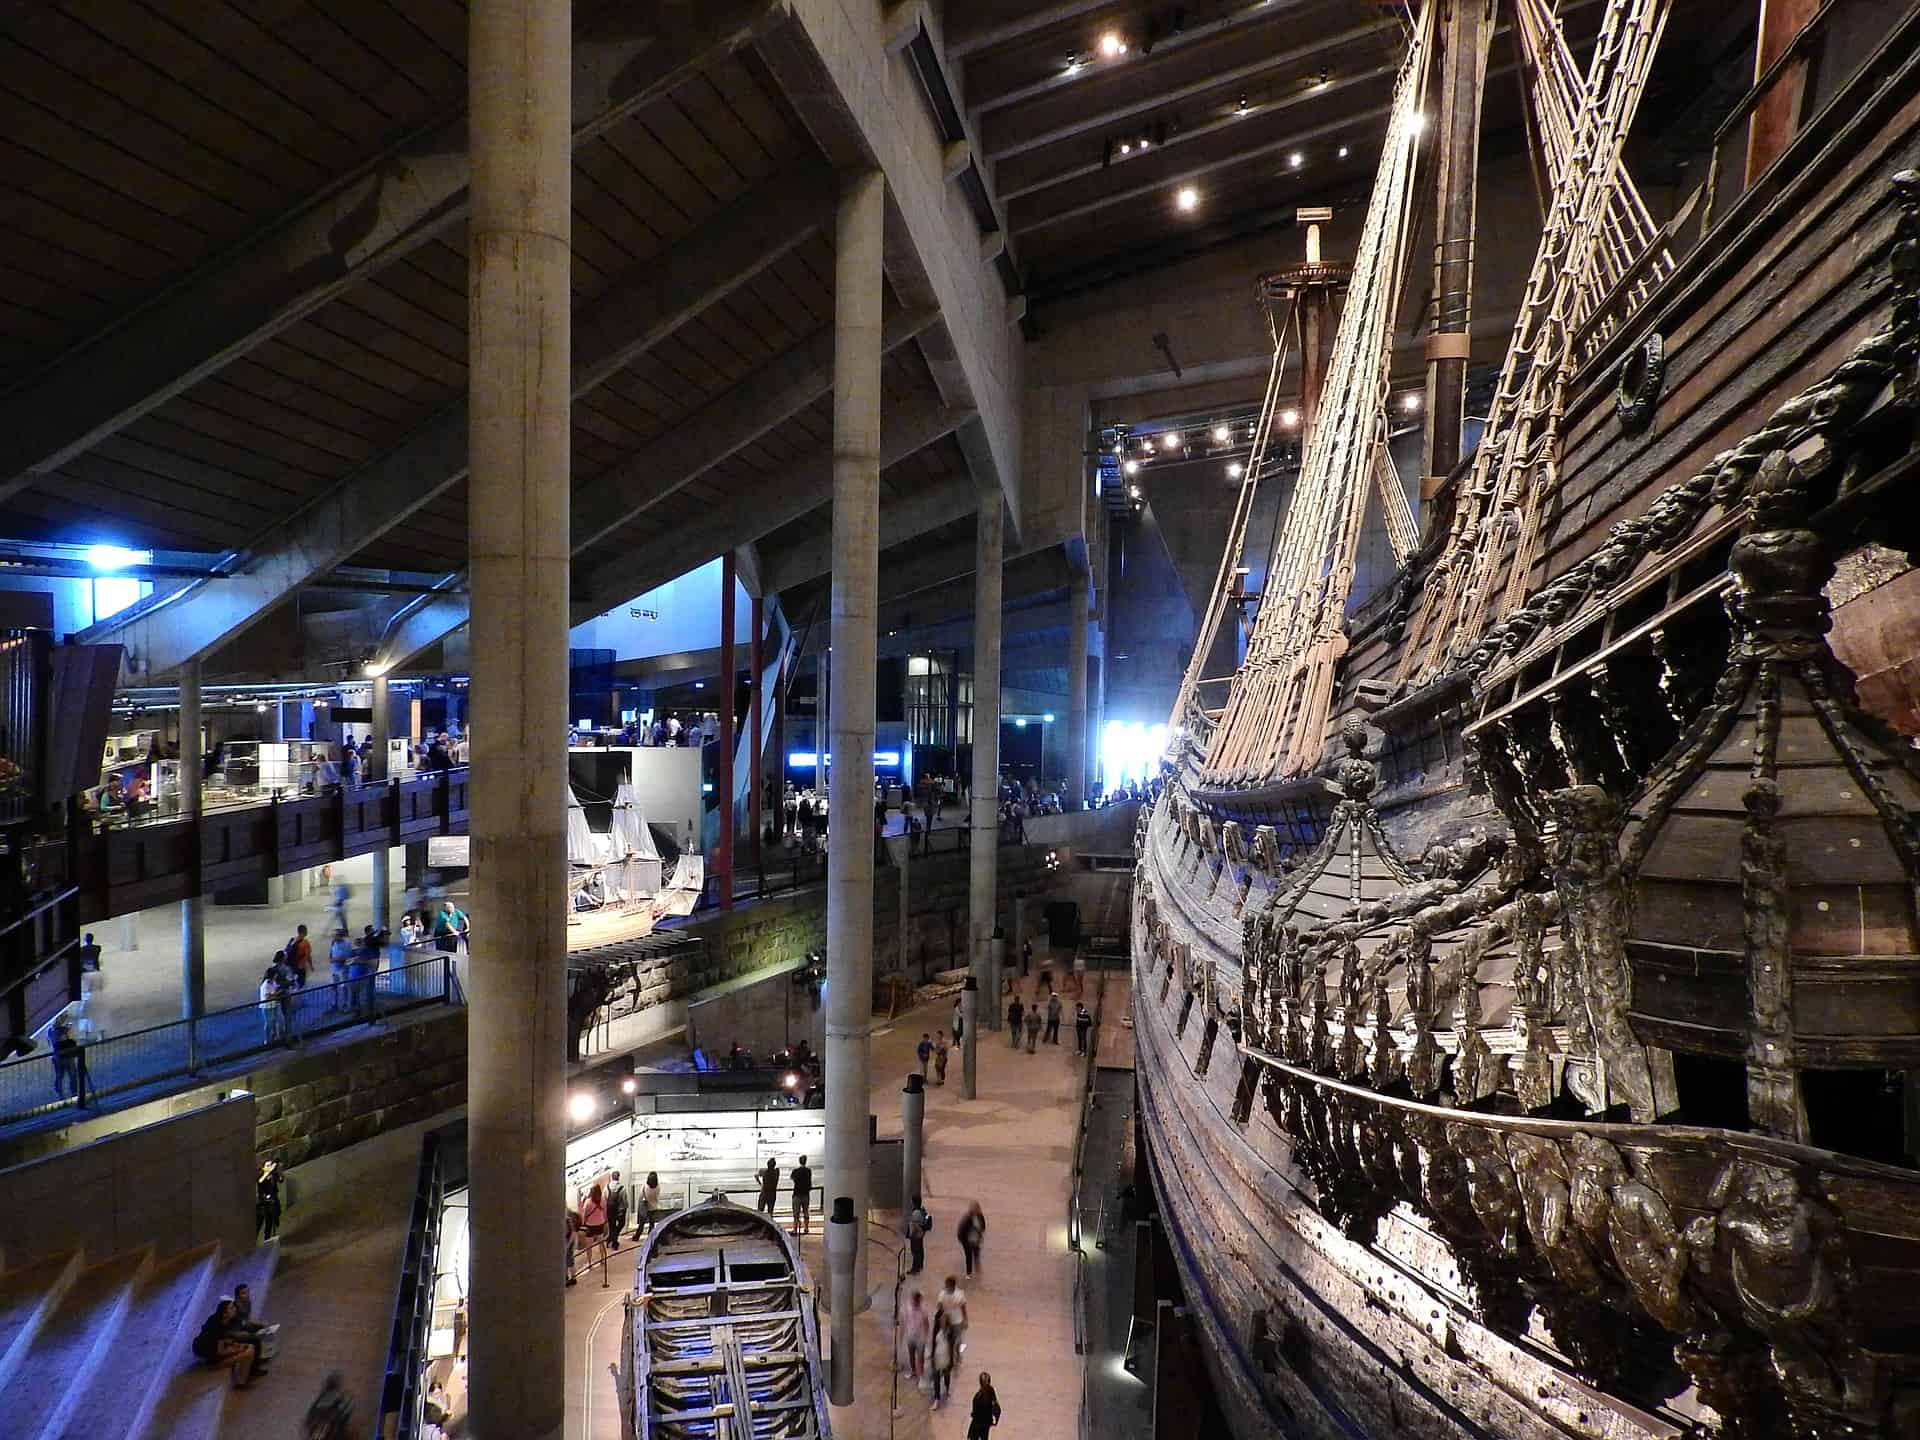 In addition to the ship itself, 14,000 loose wooden objects were recovered, including 700 wooden statues. These are subsequently preserved separately and placed back in their original location on the ship.